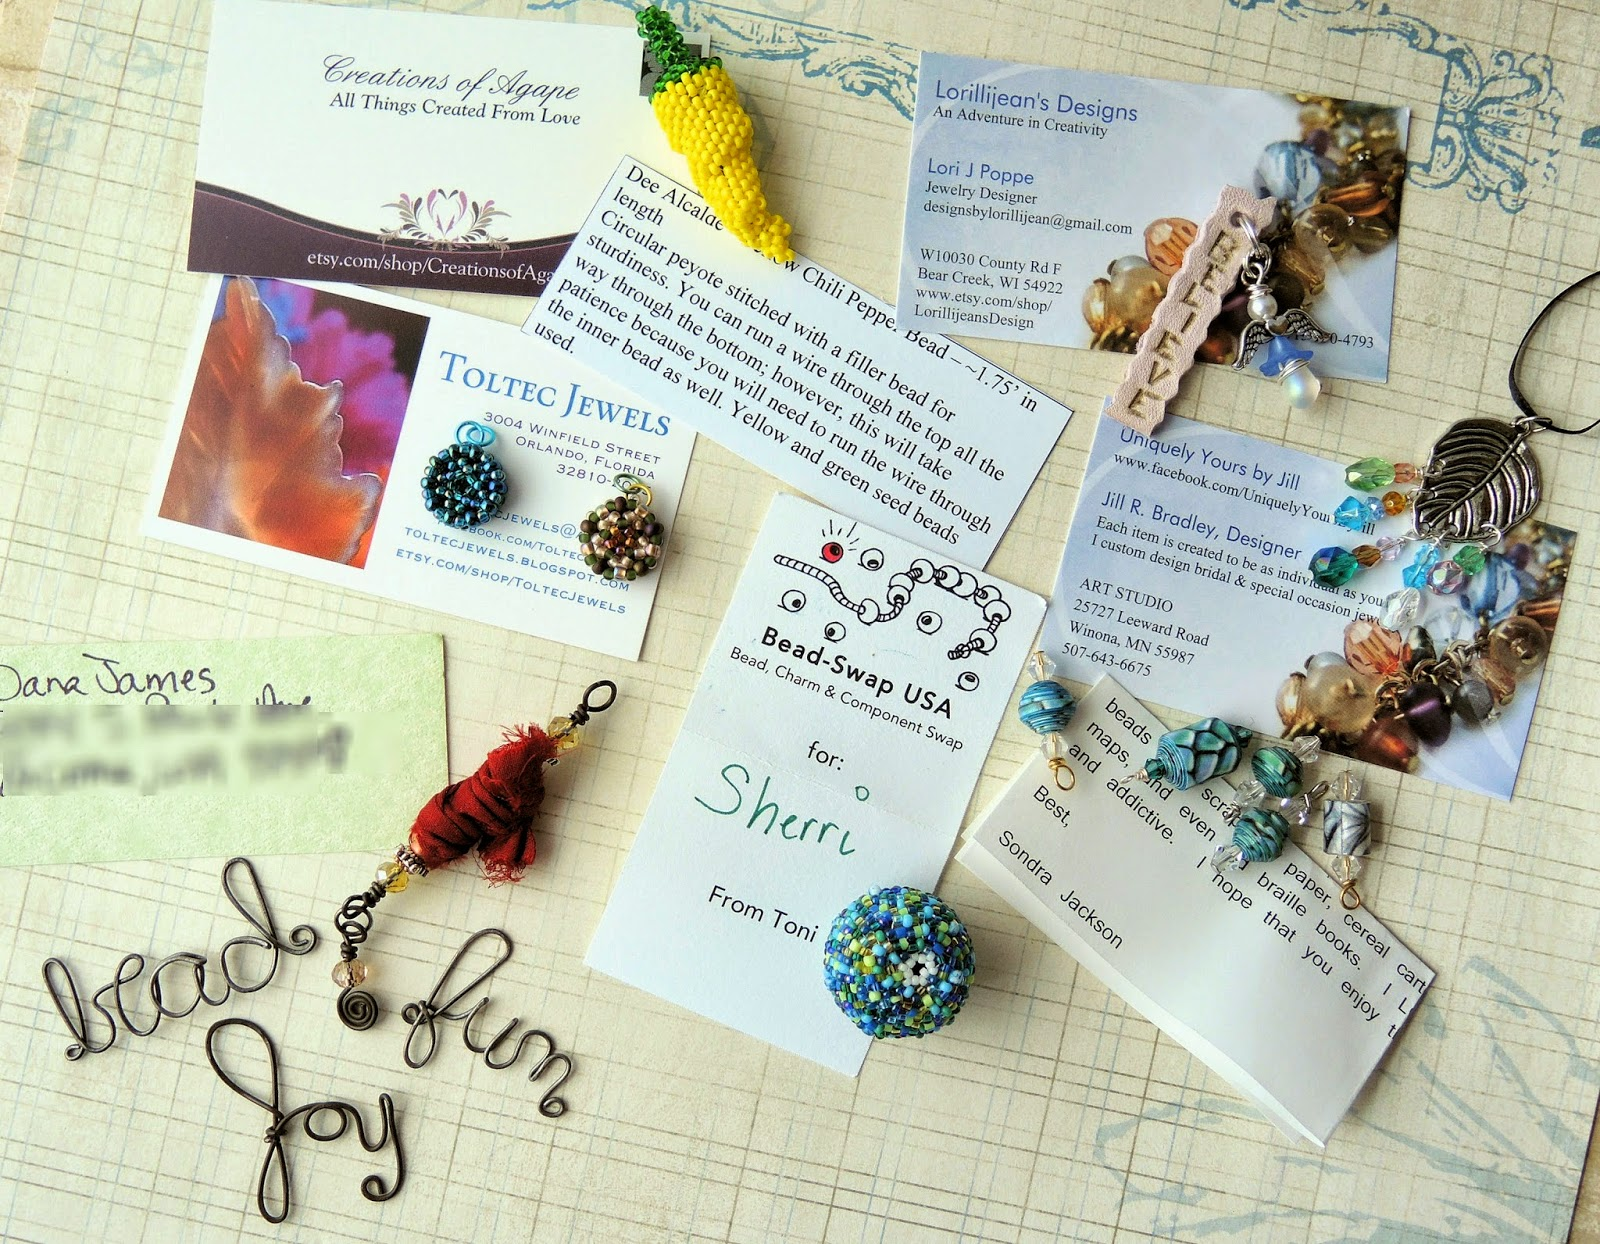 Artists' charms made of bead weaving and other mediums.